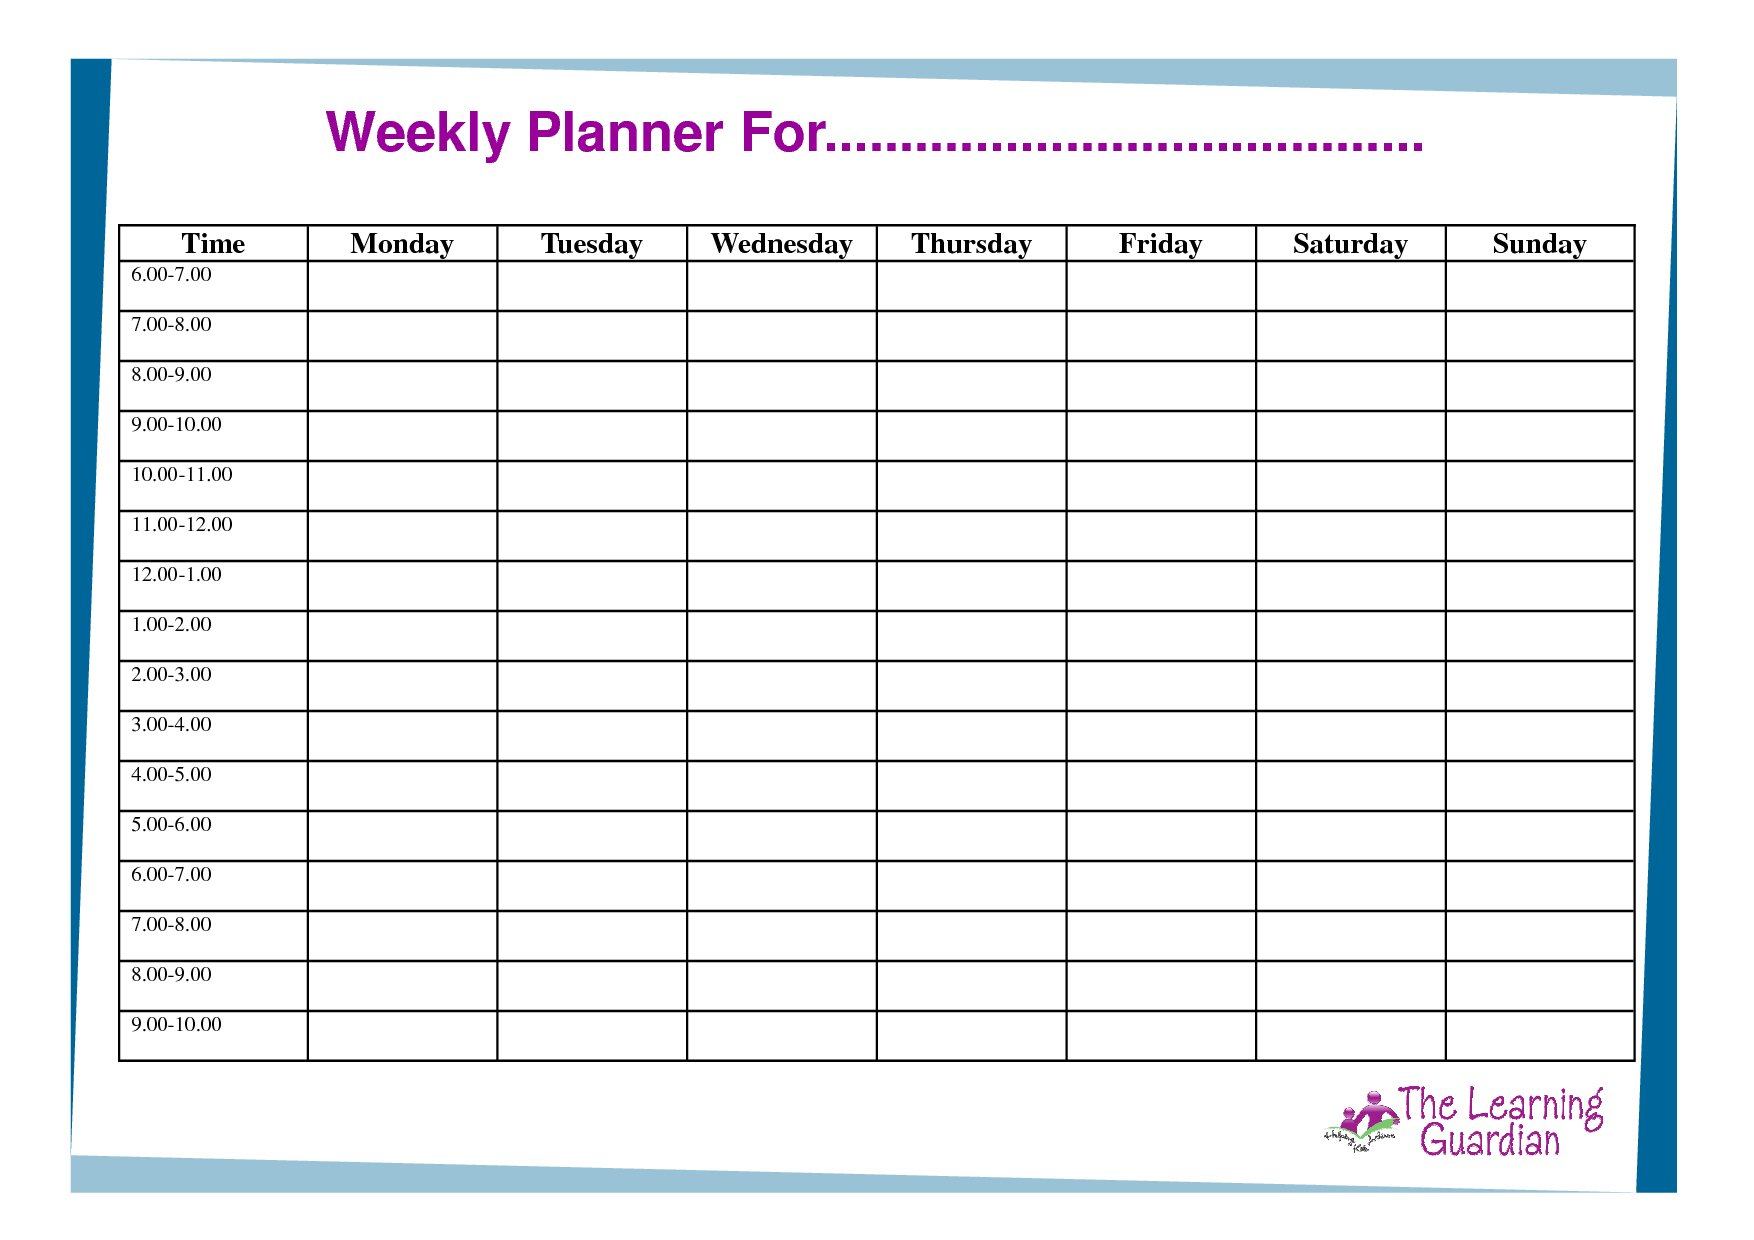 Daily Hourly Calendar Template Free | Daily Calendar Printable Hourly Schedule Free